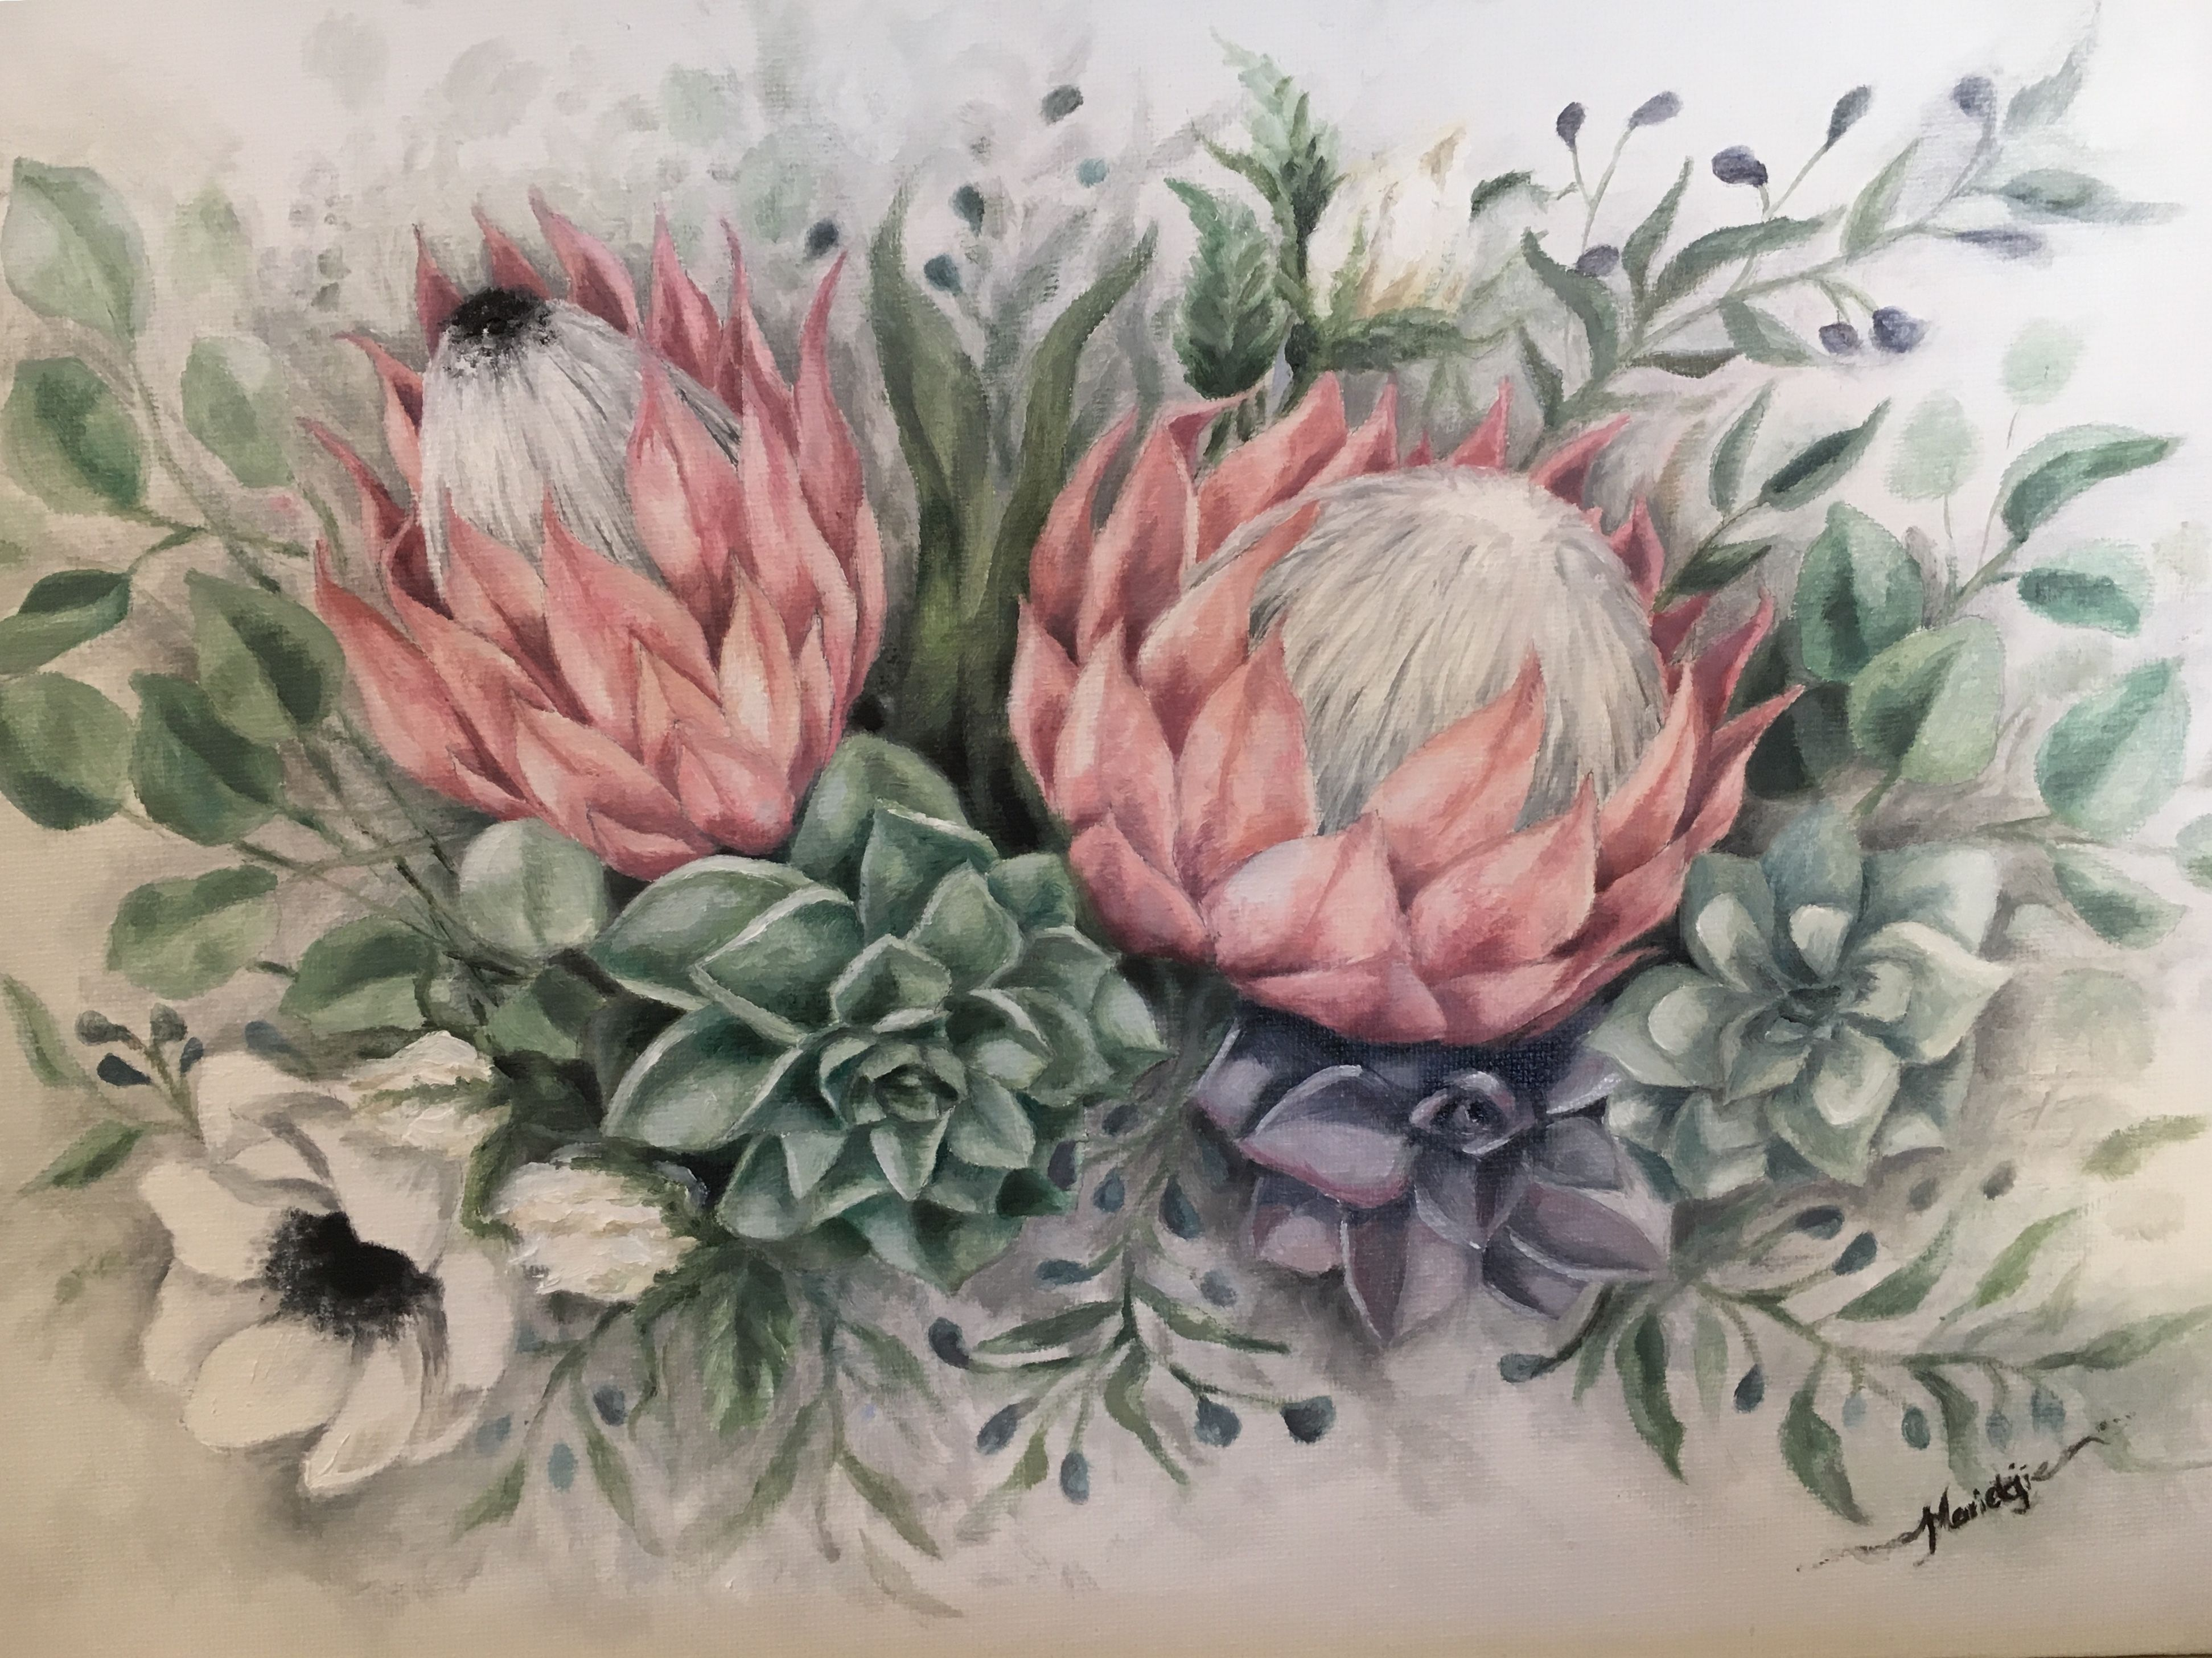 Pin By Elfrieds Strydom On Art Floral With Images Protea Art Flower Painting Succulent Painting